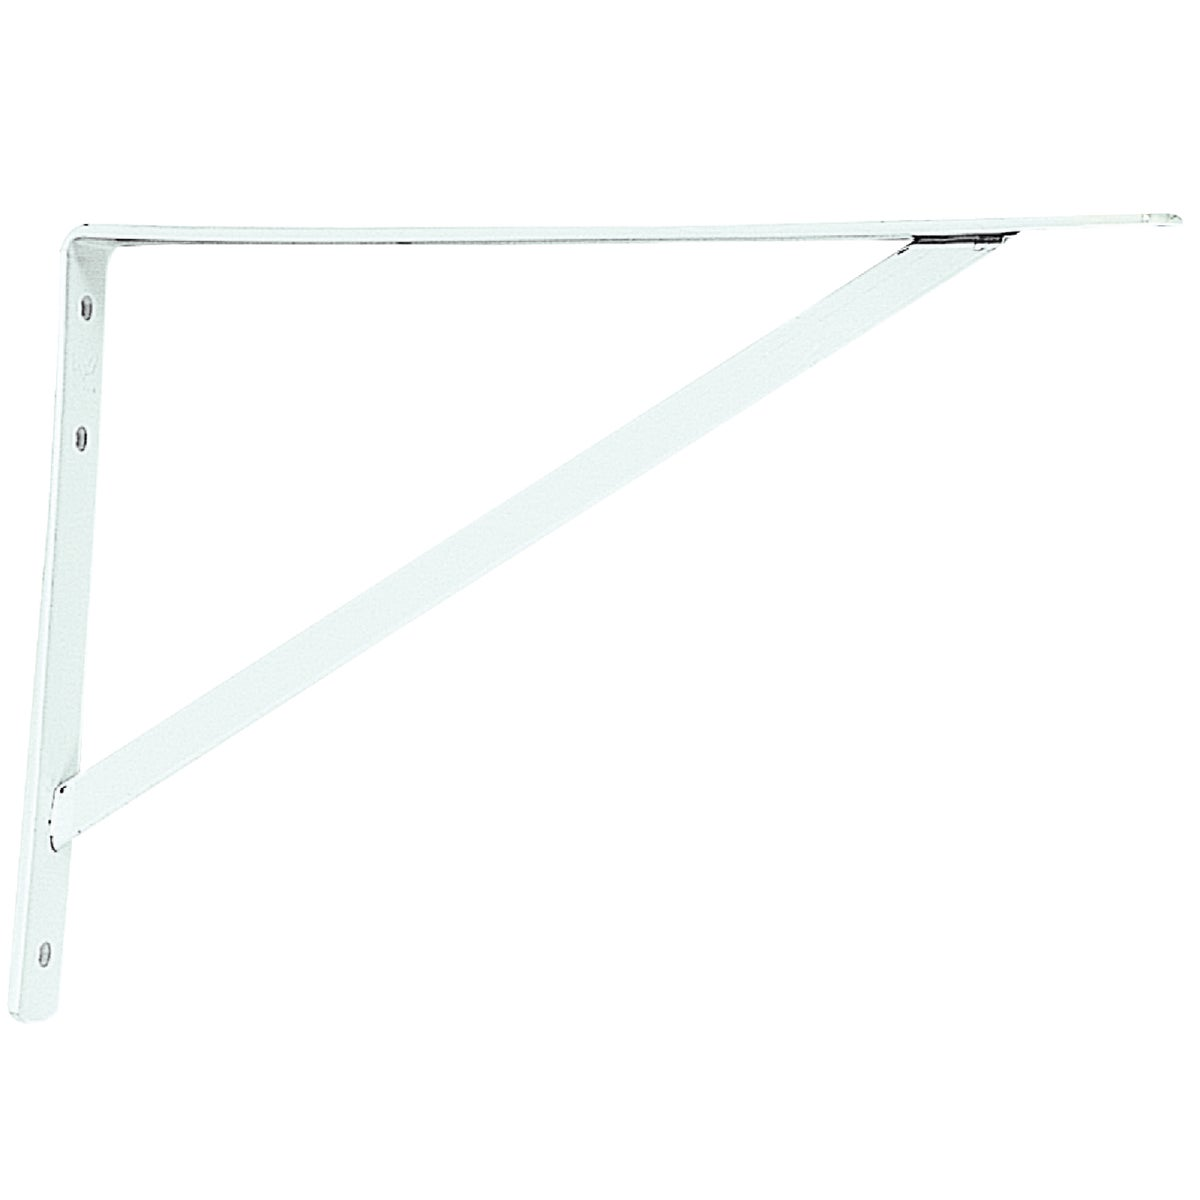 "16"" WHITE BRACKET - 208WH400 by Knape & Vogt Mfg Co"